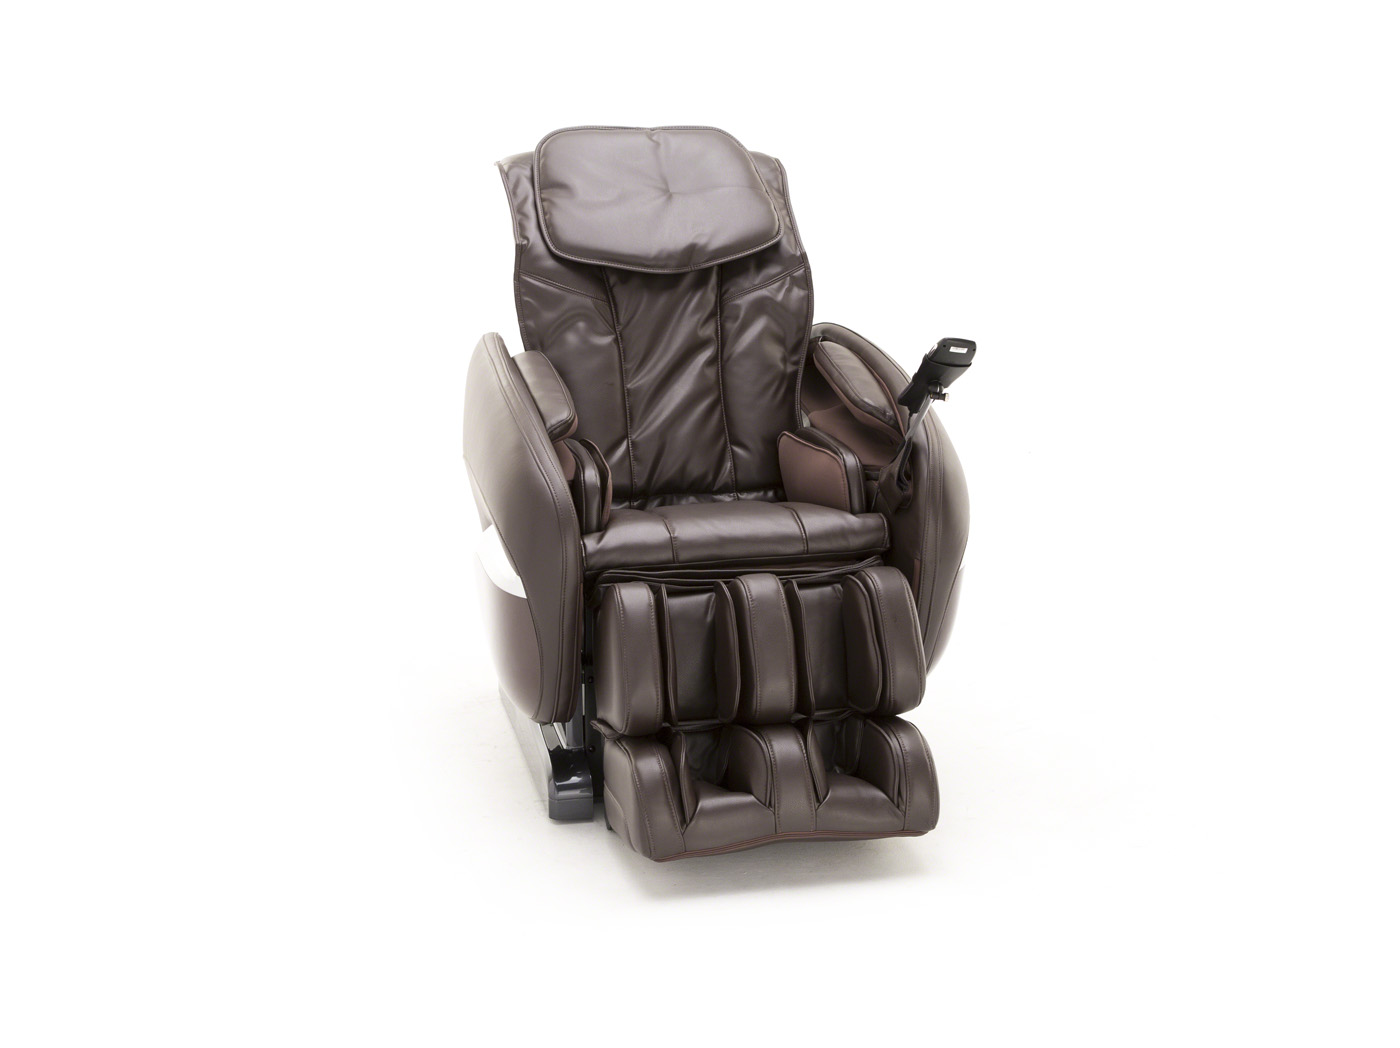 Asana Massage Chair